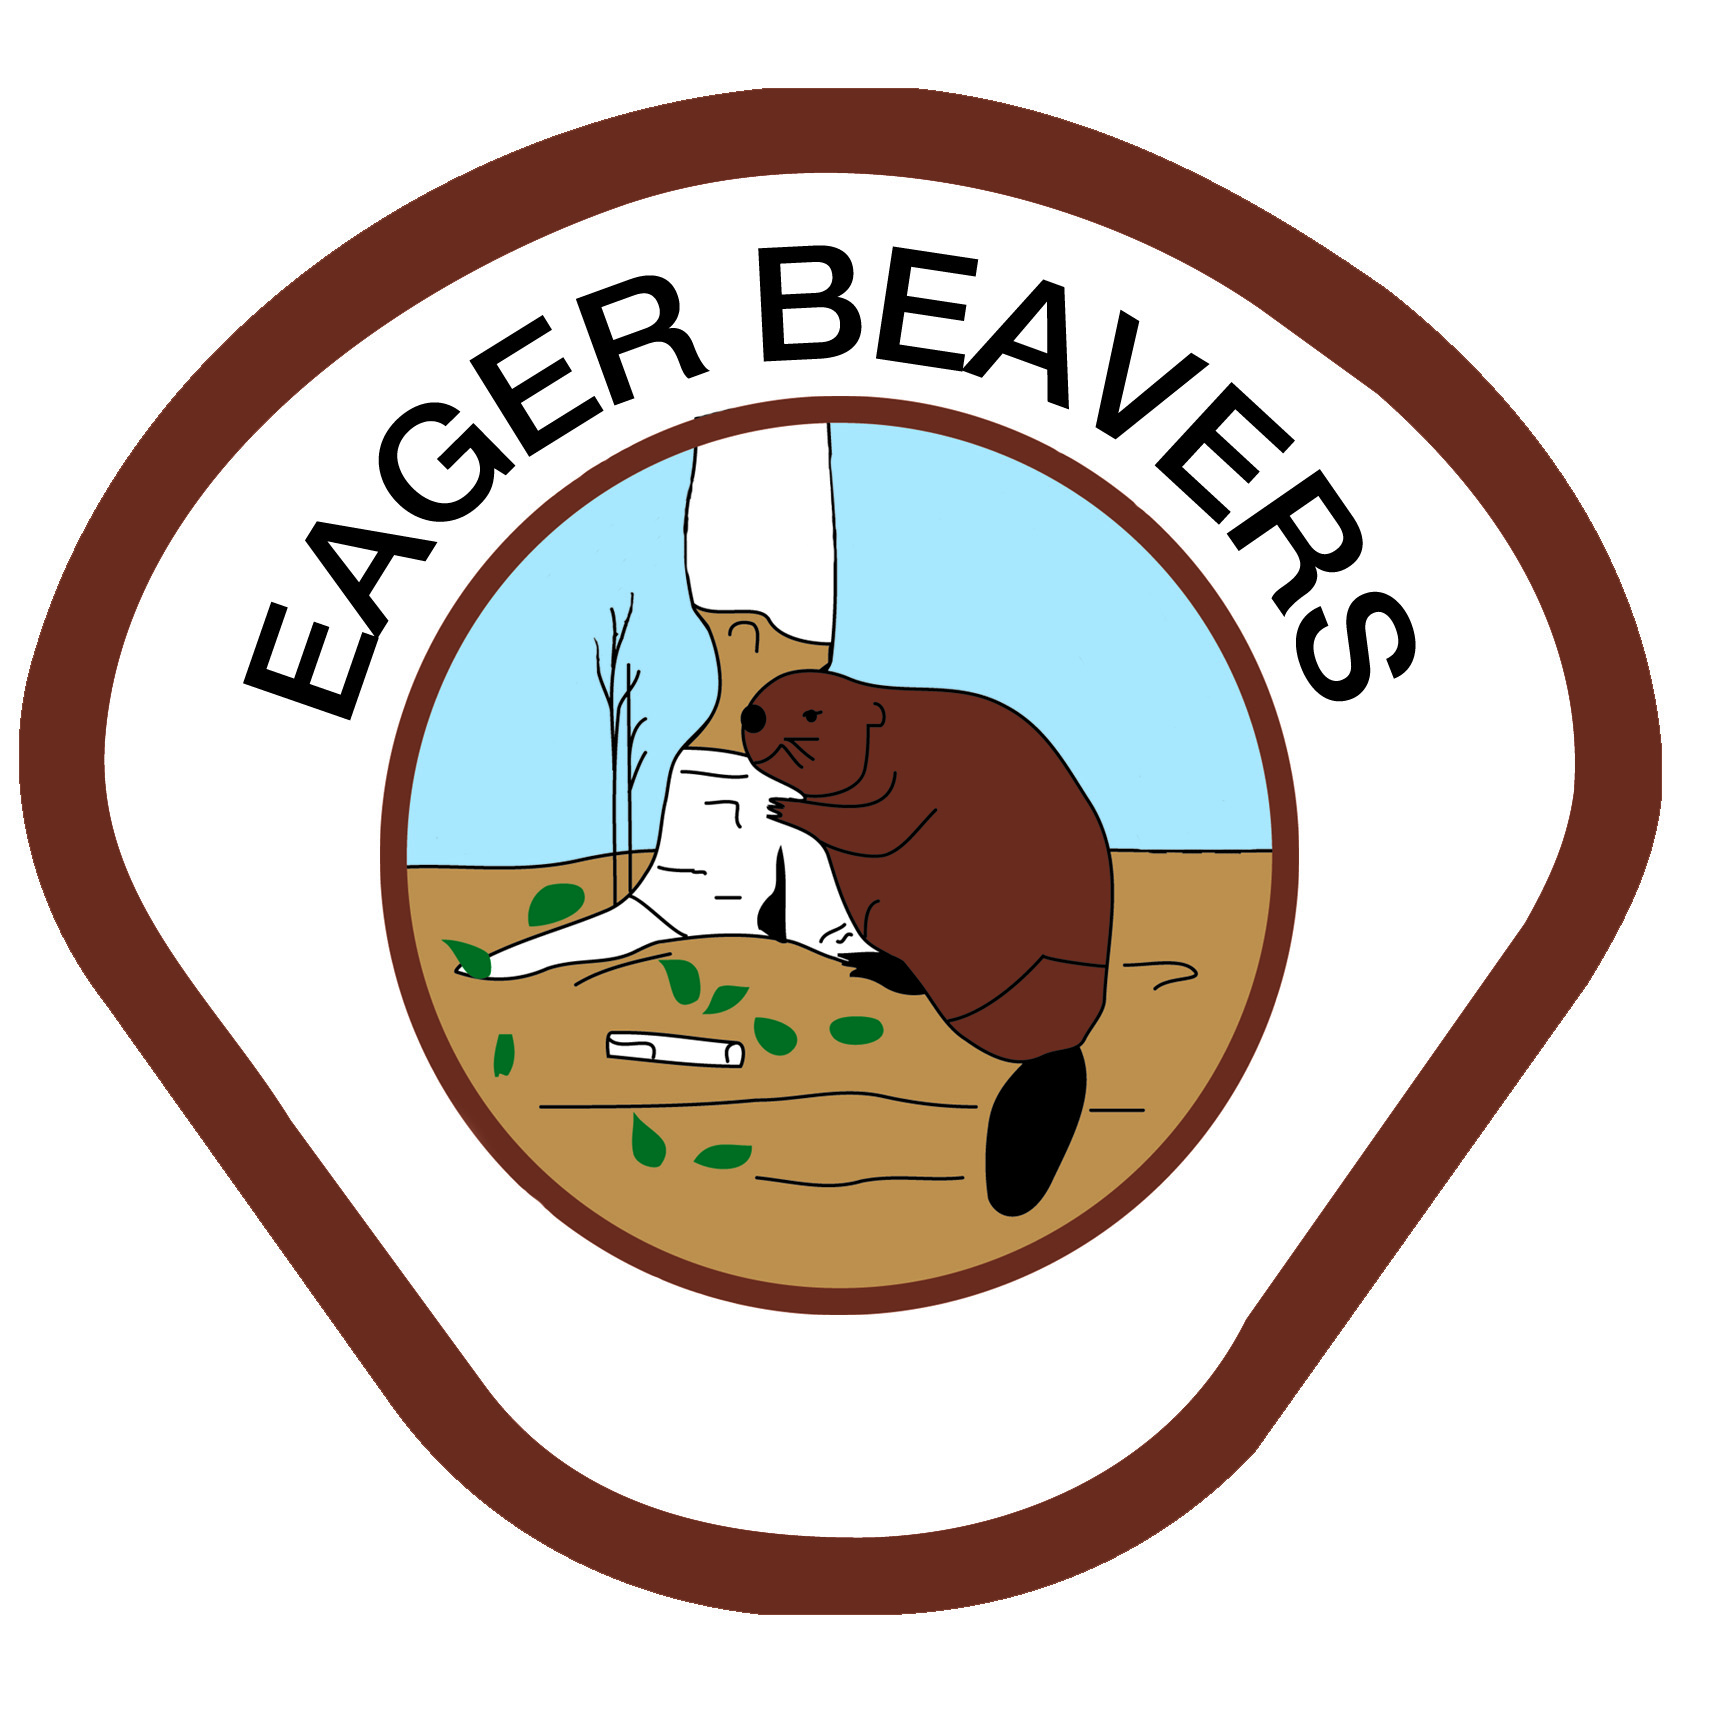 Eager Beaver Club Logos Adventist Youth Ministries Nad